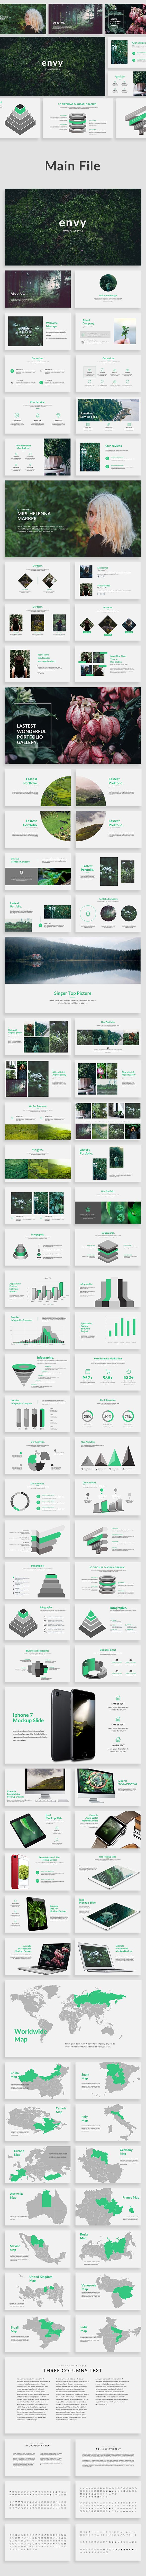 Poster design powerpoint - Envy Creative Powerpoint Template